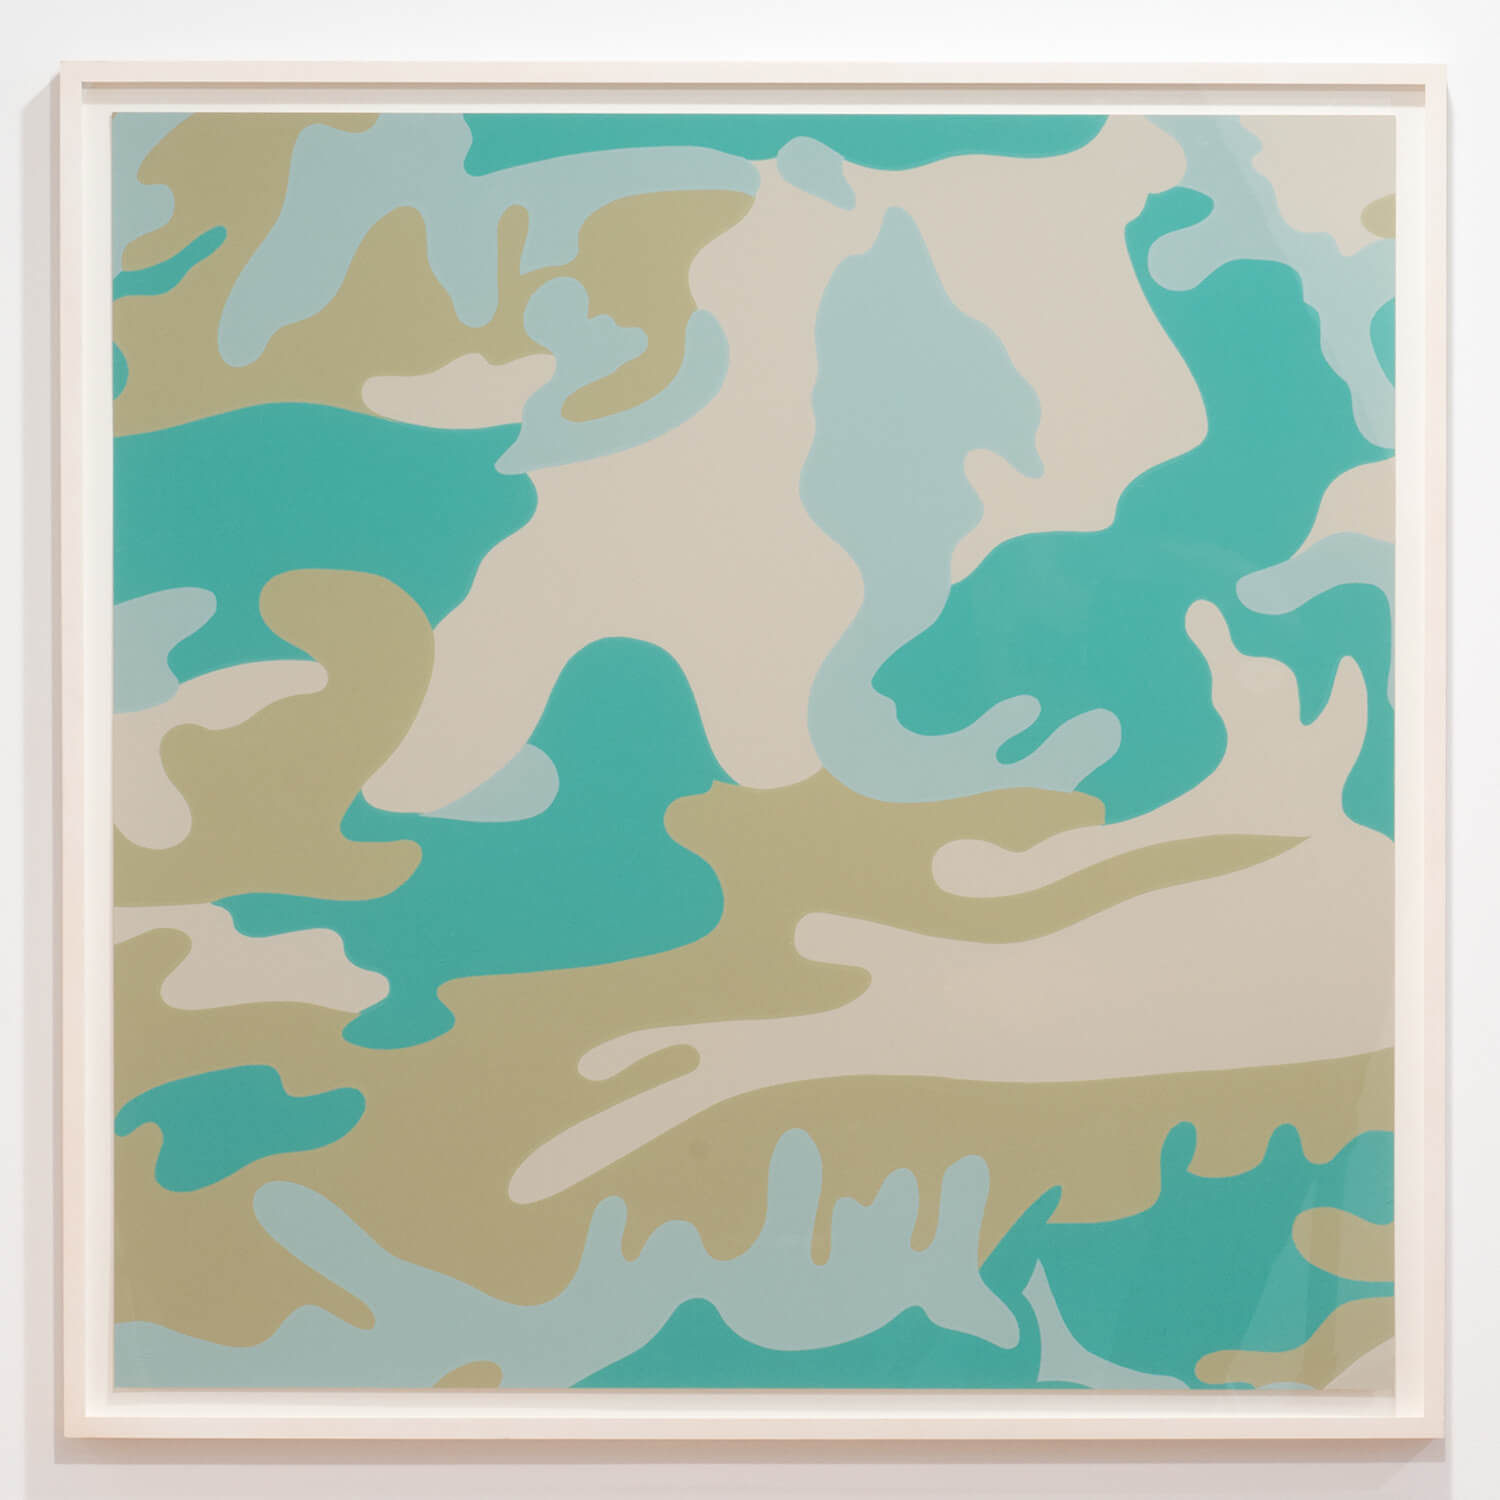 Andy Warhol                                         'Camouflage (Unique variant of II.407)', 1987                                         38 x 38 Inches                                         screen print on Lenox Museum Board                                         edition 75/80